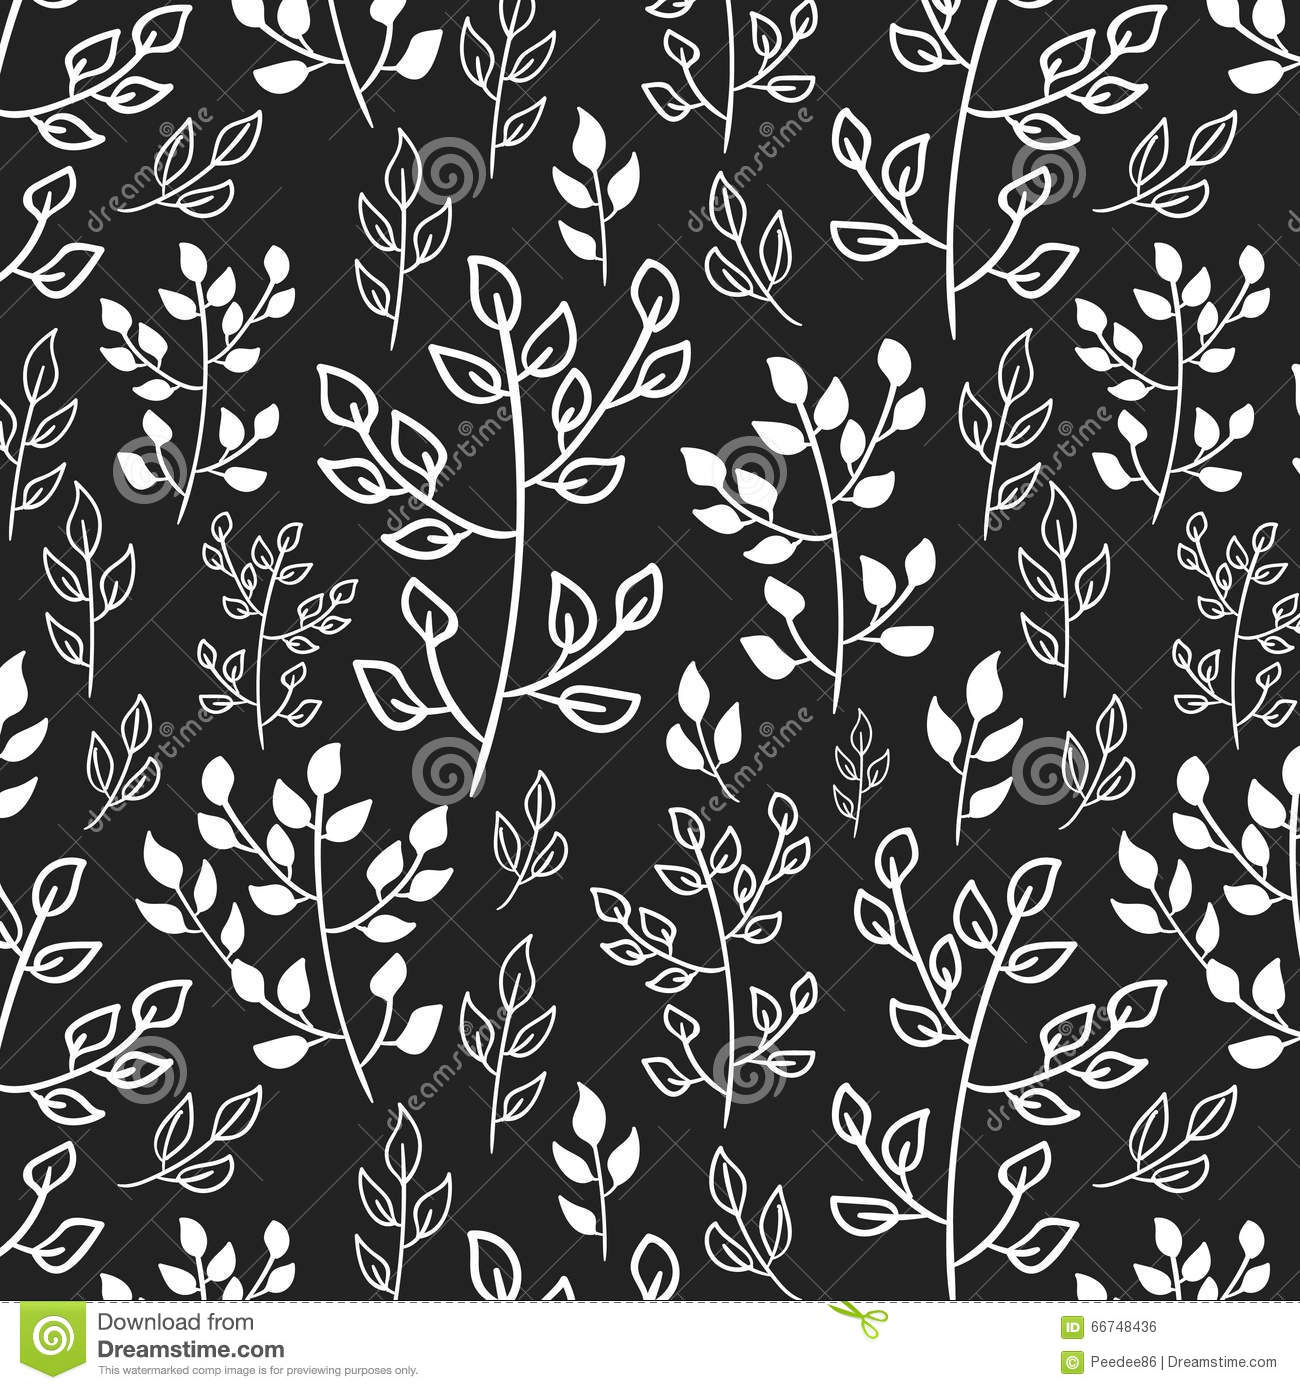 White and Black background designs patterns forecast to wear in winter in 2019